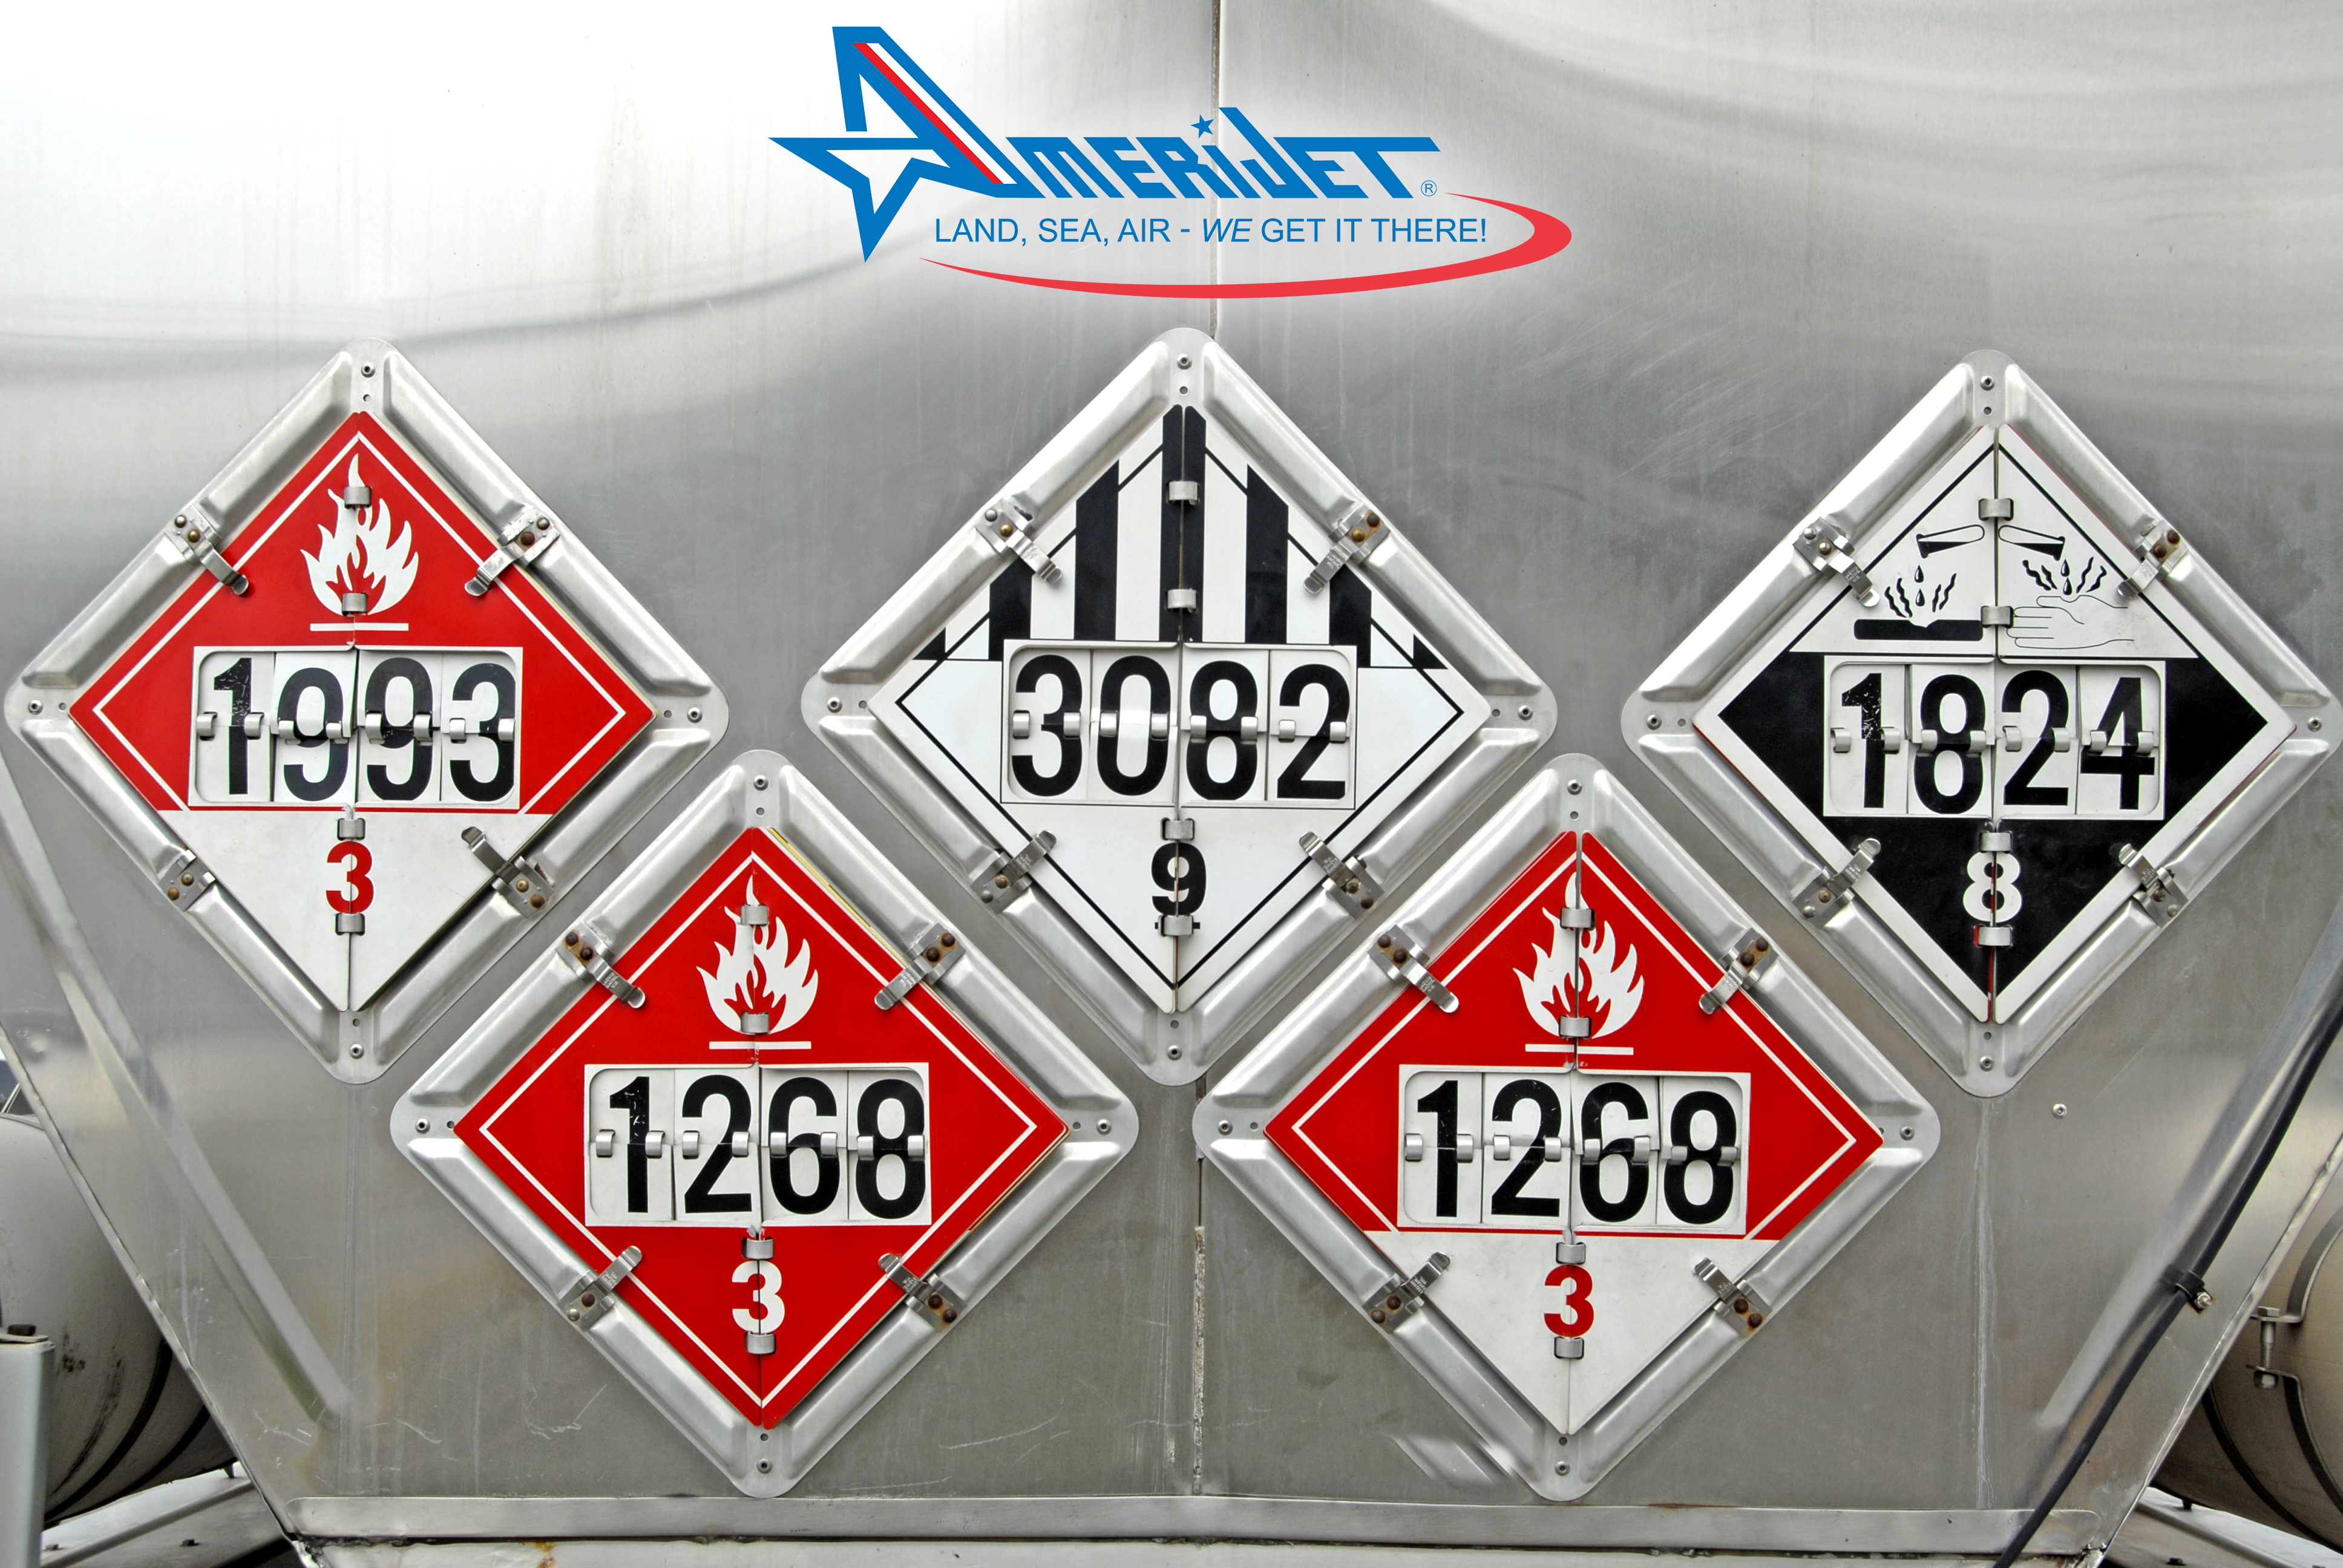 Maintaining safety at all times, even with dangerous goods